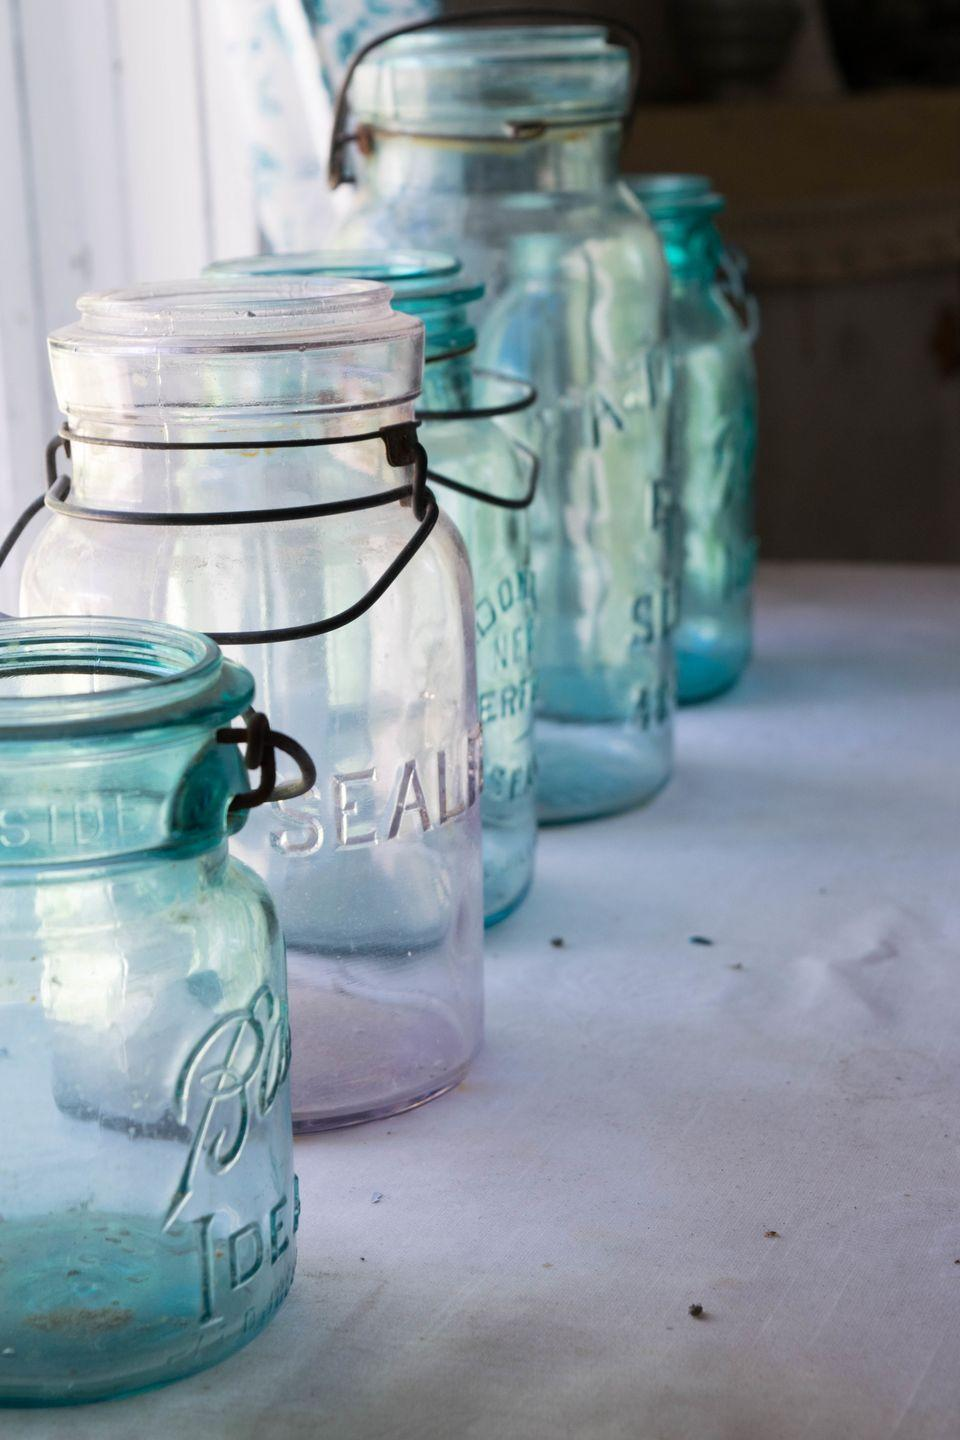 "<p>Invented in 1858 by John Landis Mason, these handy glass jars with the airtight seals were first used for canning. Nowadays the rarest kinds, like those stamped with an upside-down logo that were used as dispensers, could<a href=""https://www.littlethings.com/valuing-mason-jars/4"" rel=""nofollow noopener"" target=""_blank"" data-ylk=""slk:sell for around $1,000."" class=""link rapid-noclick-resp""> sell for around $1,000.</a></p>"